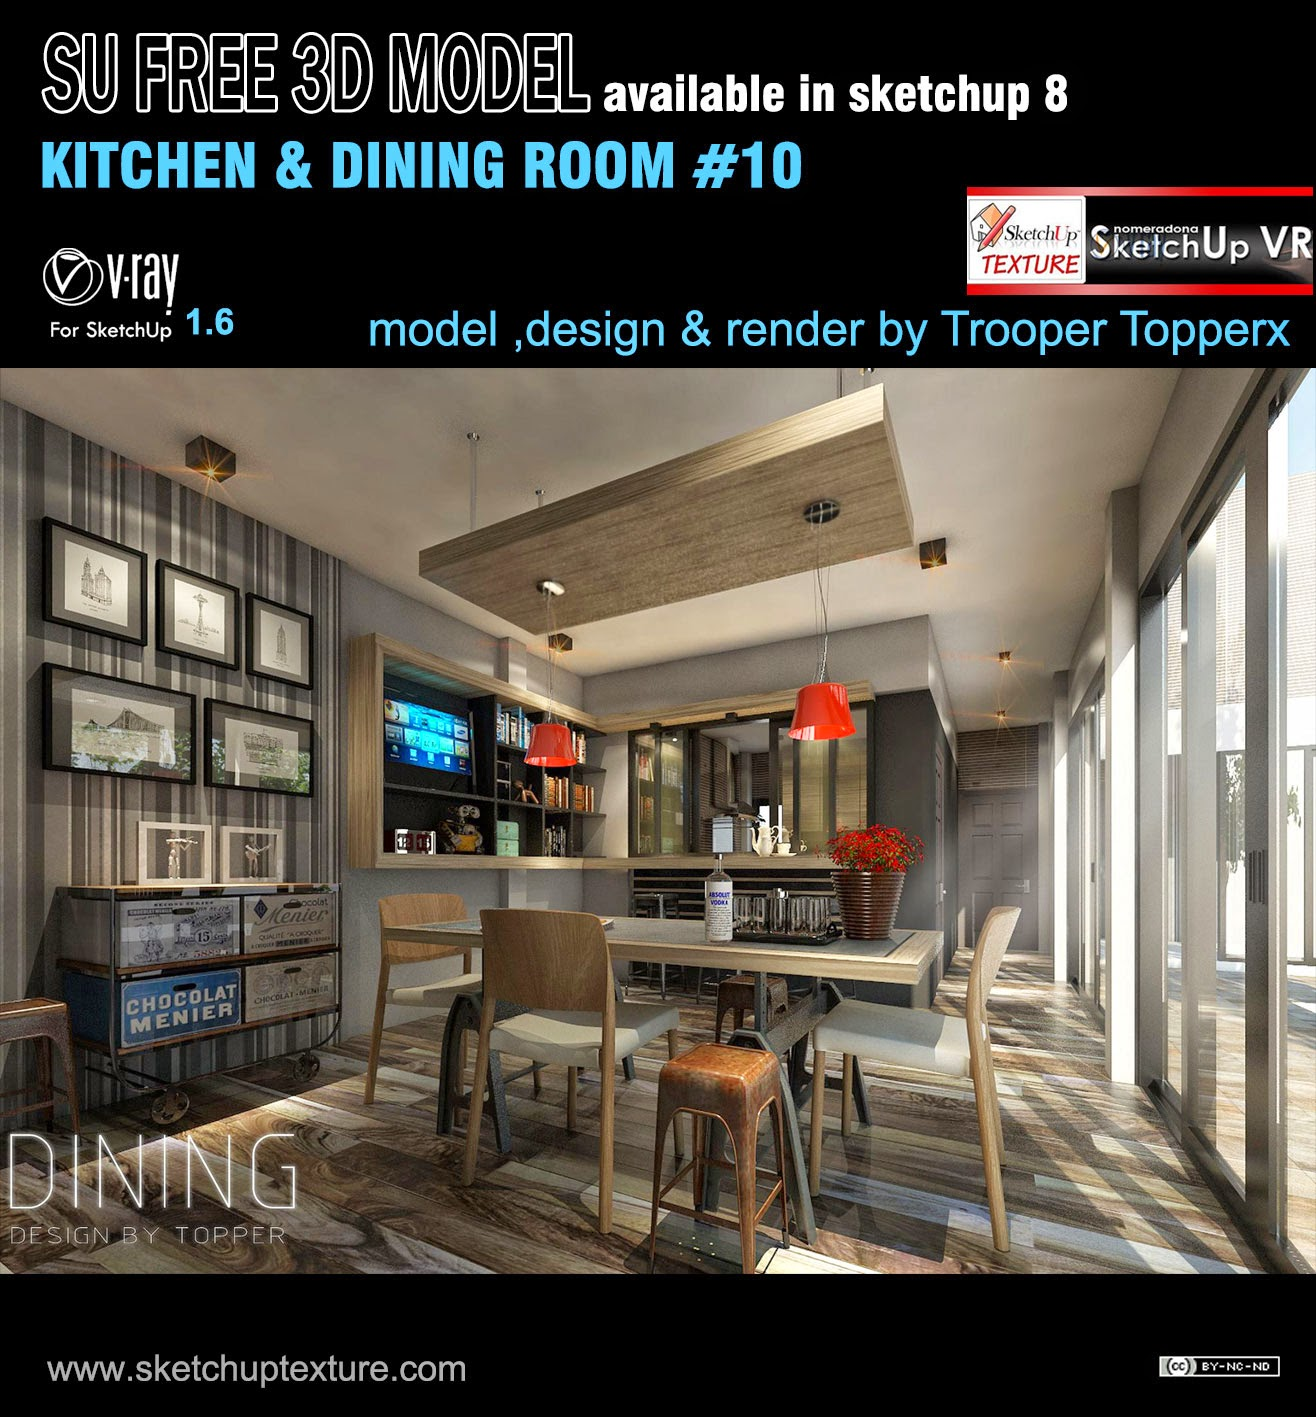 SKETCHUP TEXTURE: Best Free Sketchup 3d Model, Kitchen